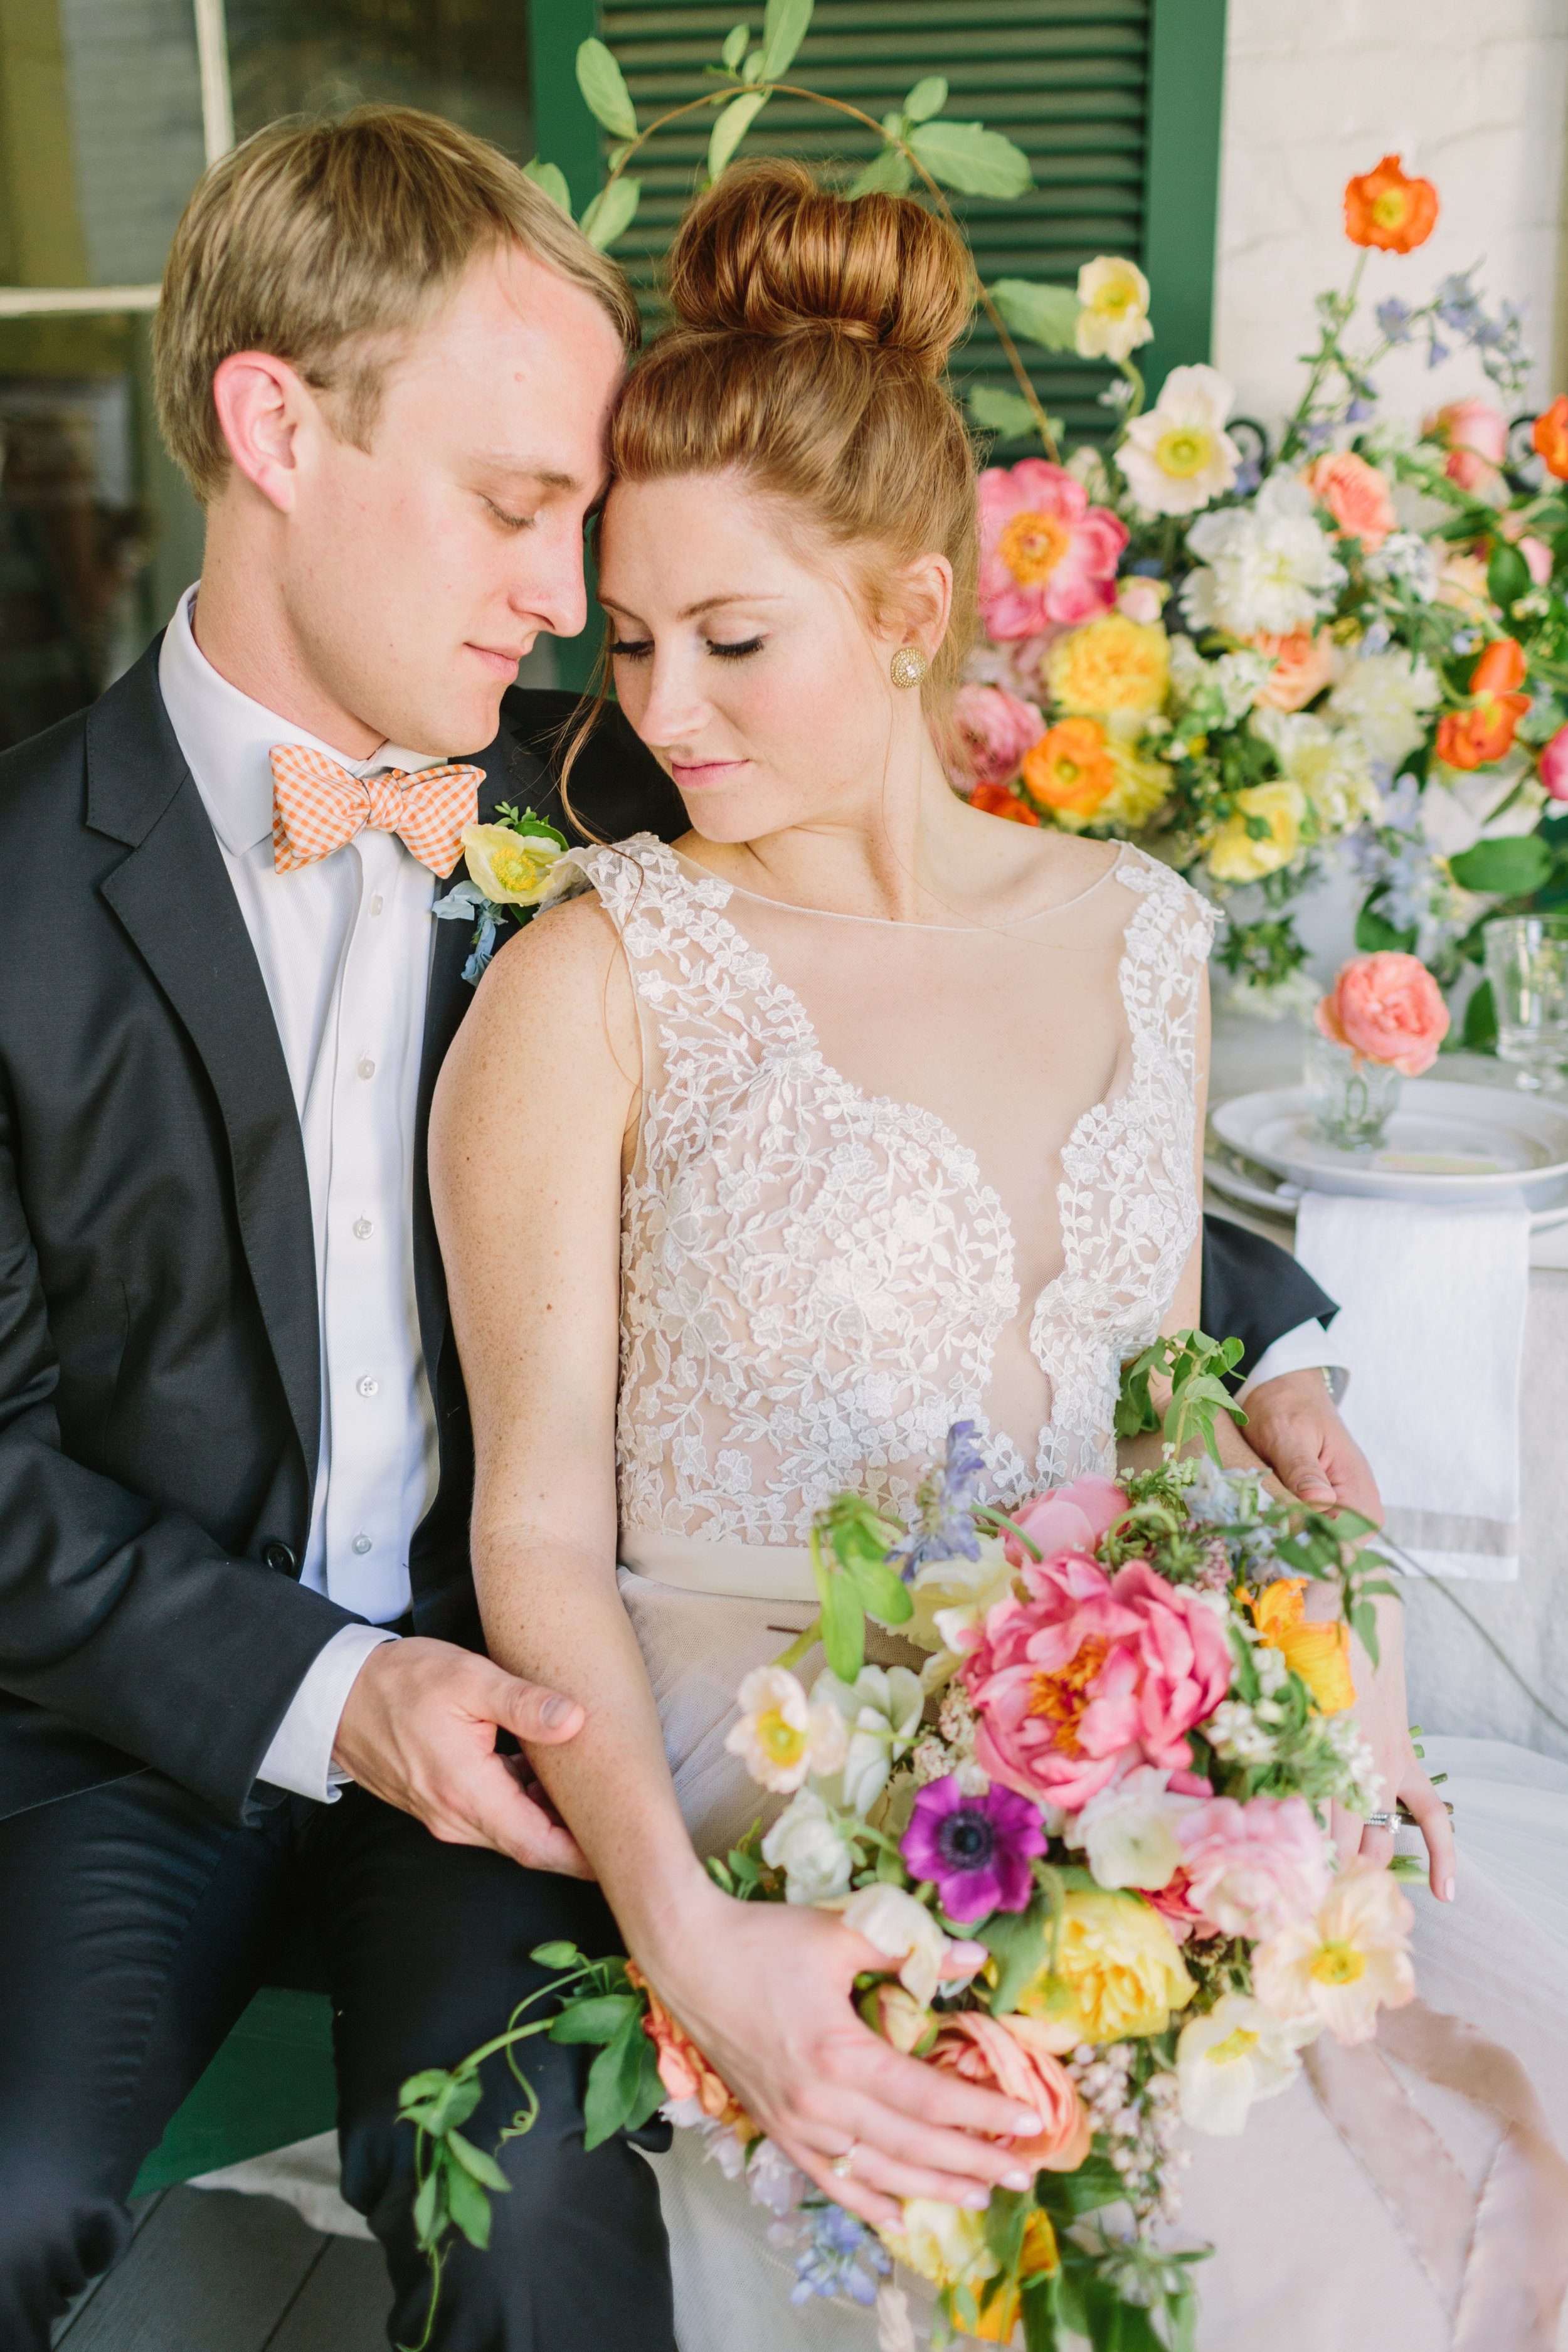 jessica-zimmerman-events-summer-wedding-colorful-groom-bride-floral.JPG